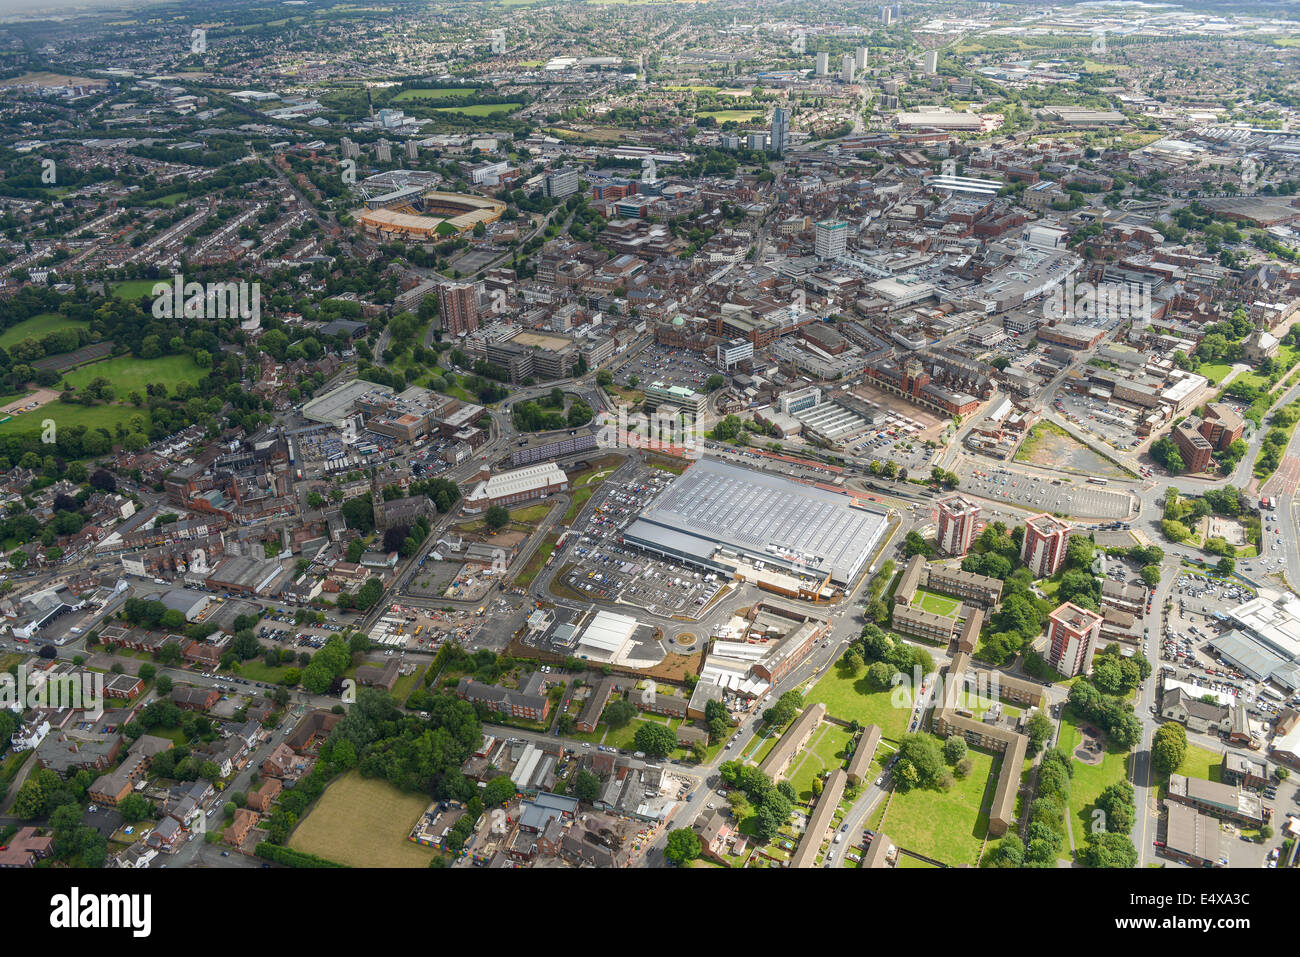 An aerial view of Wolverhampton city centre - Stock Image